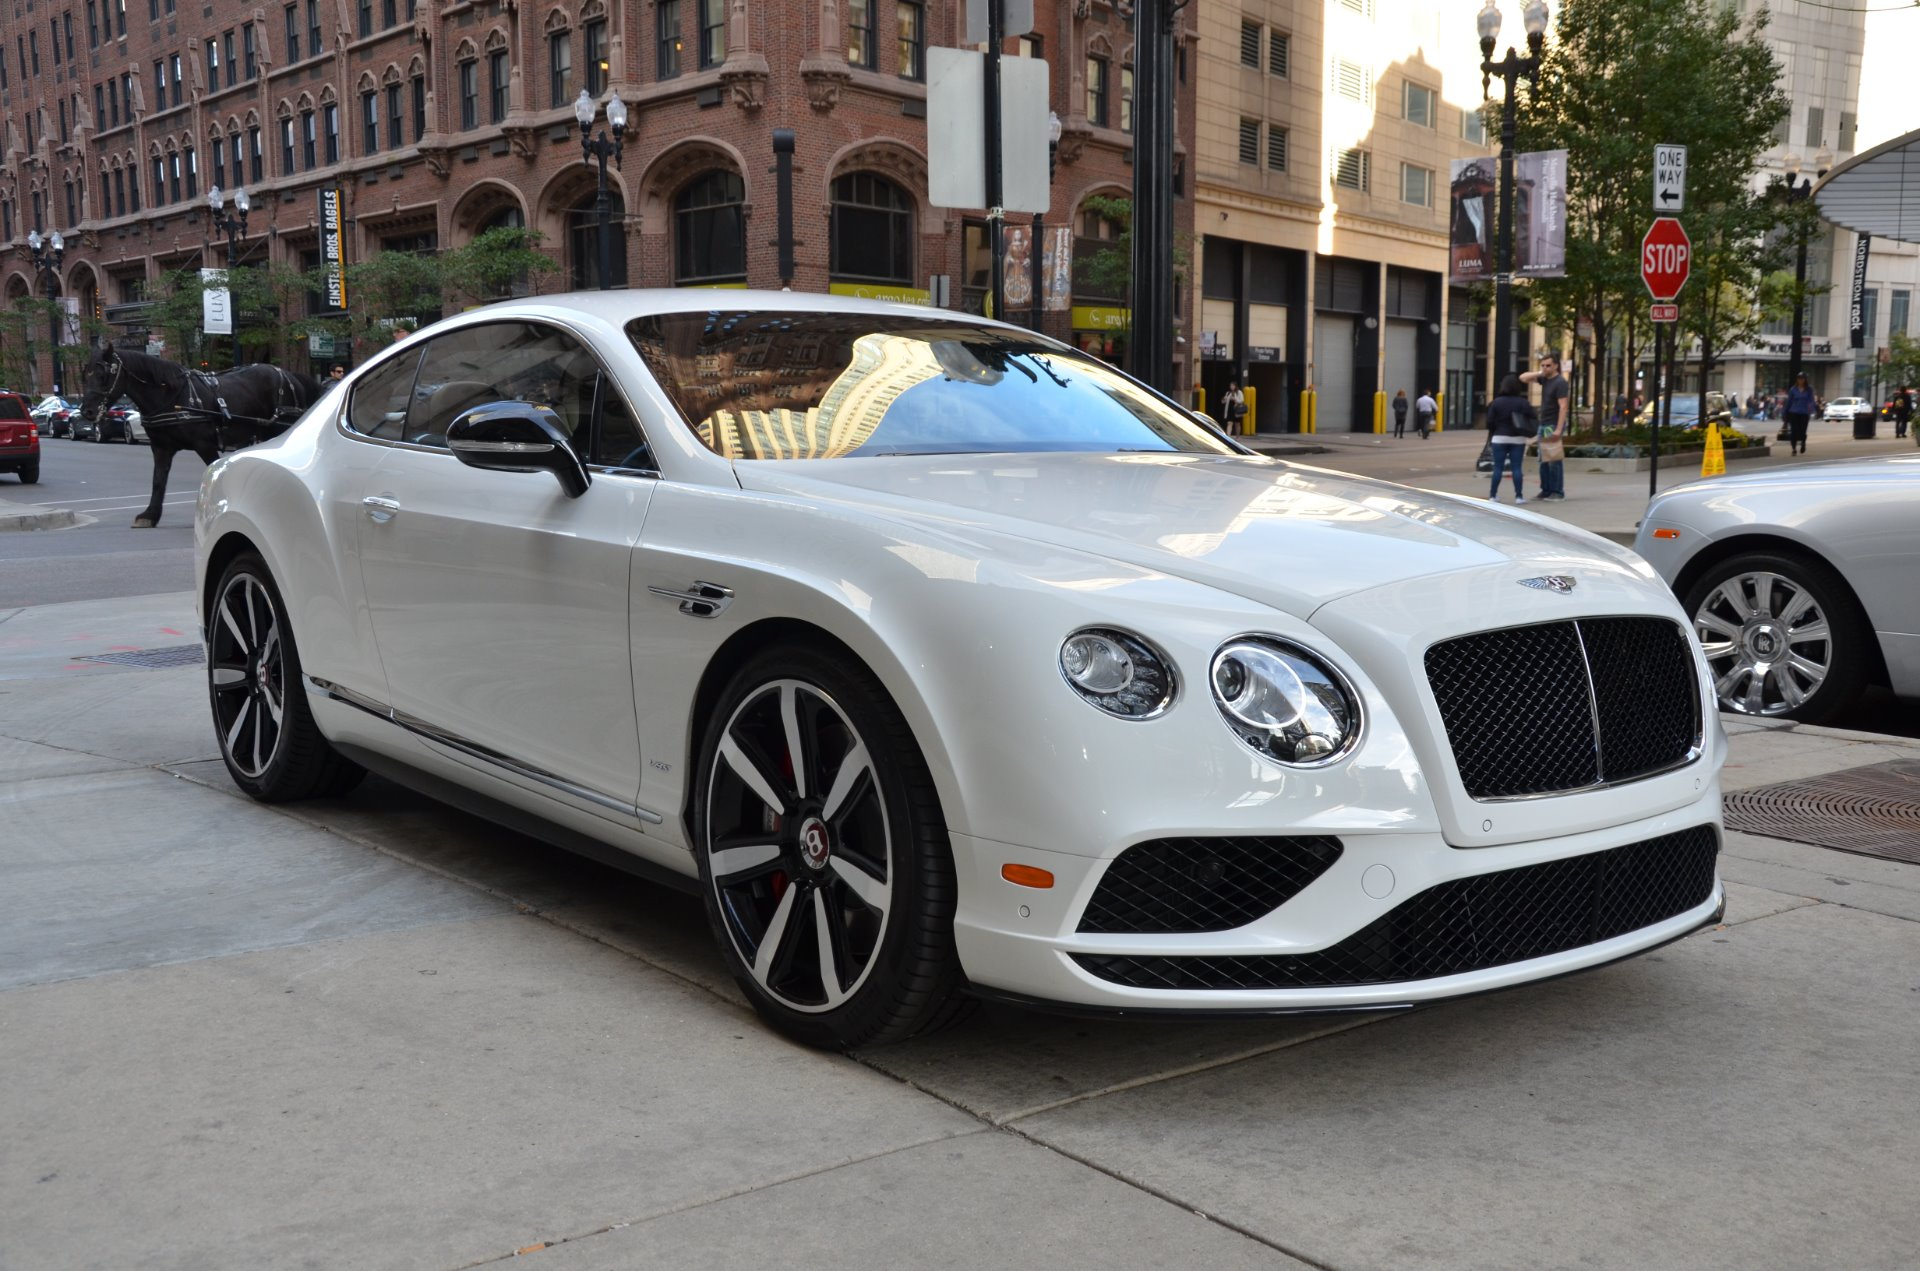 2017 bentley continental gt v8 s stock b839 for sale near chicago il il bentley dealer. Black Bedroom Furniture Sets. Home Design Ideas